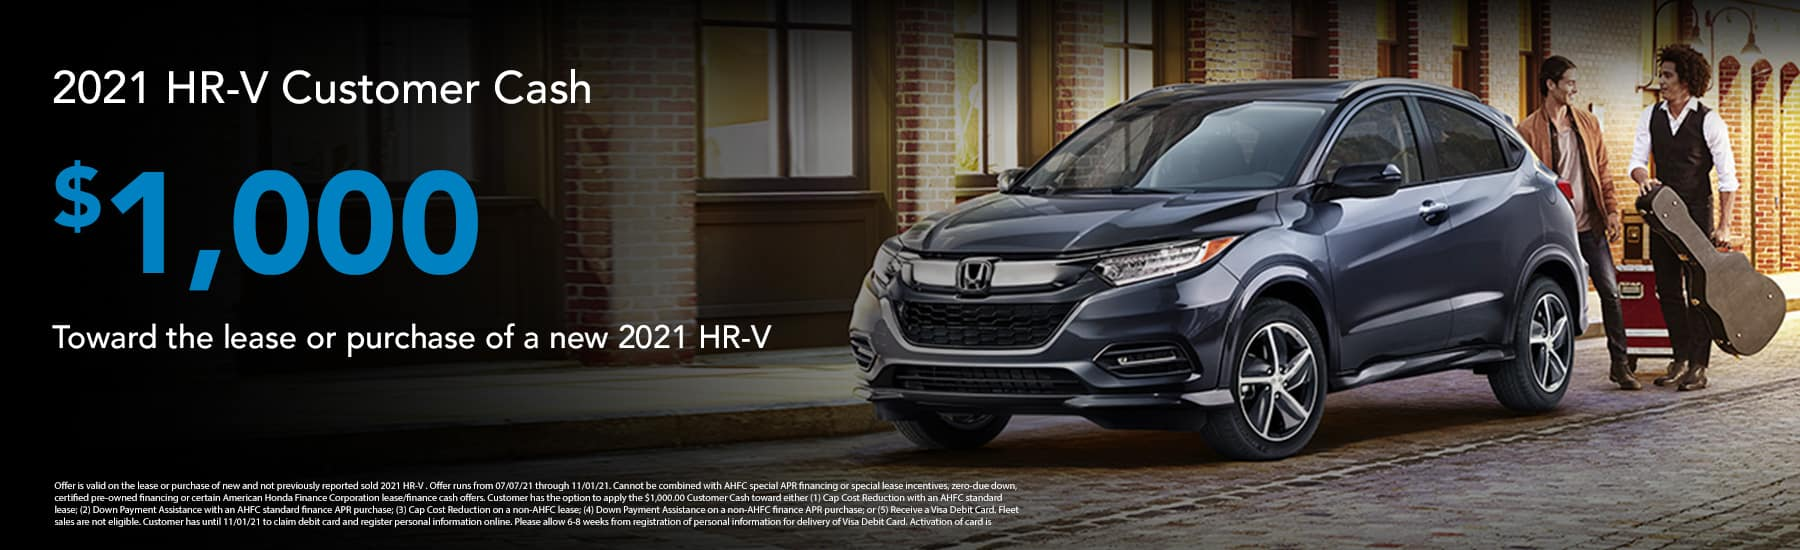 In appreciation for your military service, Honda is offering select U.S. Military individuals and their spouses $500 toward any 2020 or newer model year Honda automobile when you finance or lease through Honda Financial Services® (HFS). See offer details for customer and vehicle eligibility.